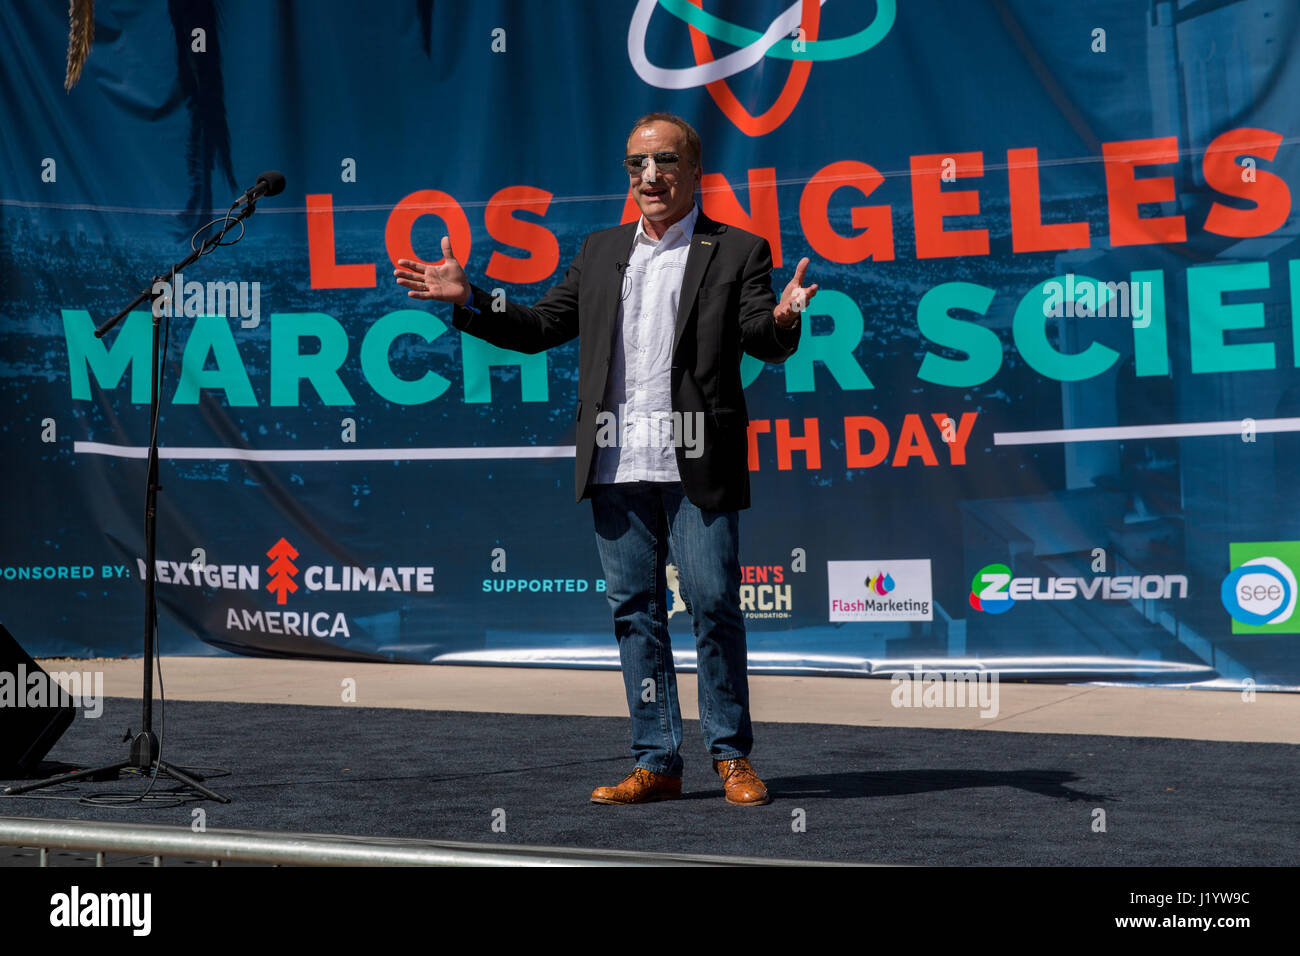 Science writer Michael Shermer speaks at the Los Angeles March For Science in Pershing Square, Downtown L.A. on - Stock Image